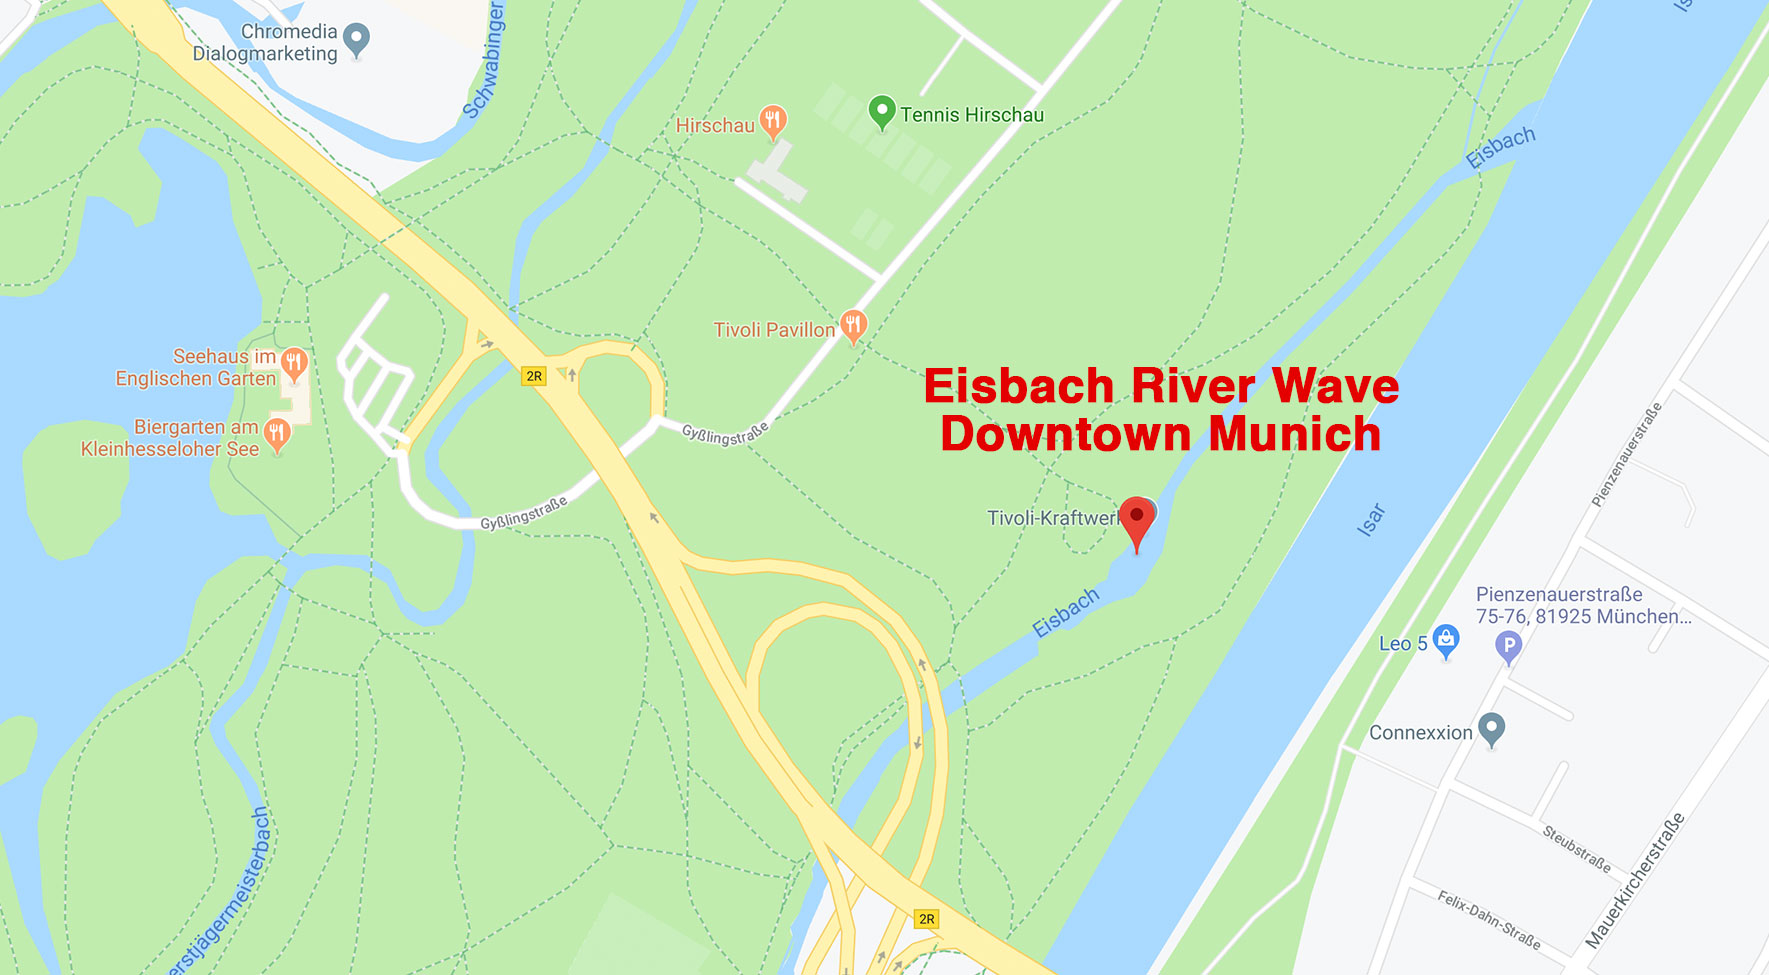 Surfing the Eisbach River Wave | Downtown Munich, Germany | Dr Steven A Martin | Surf Tourism Research